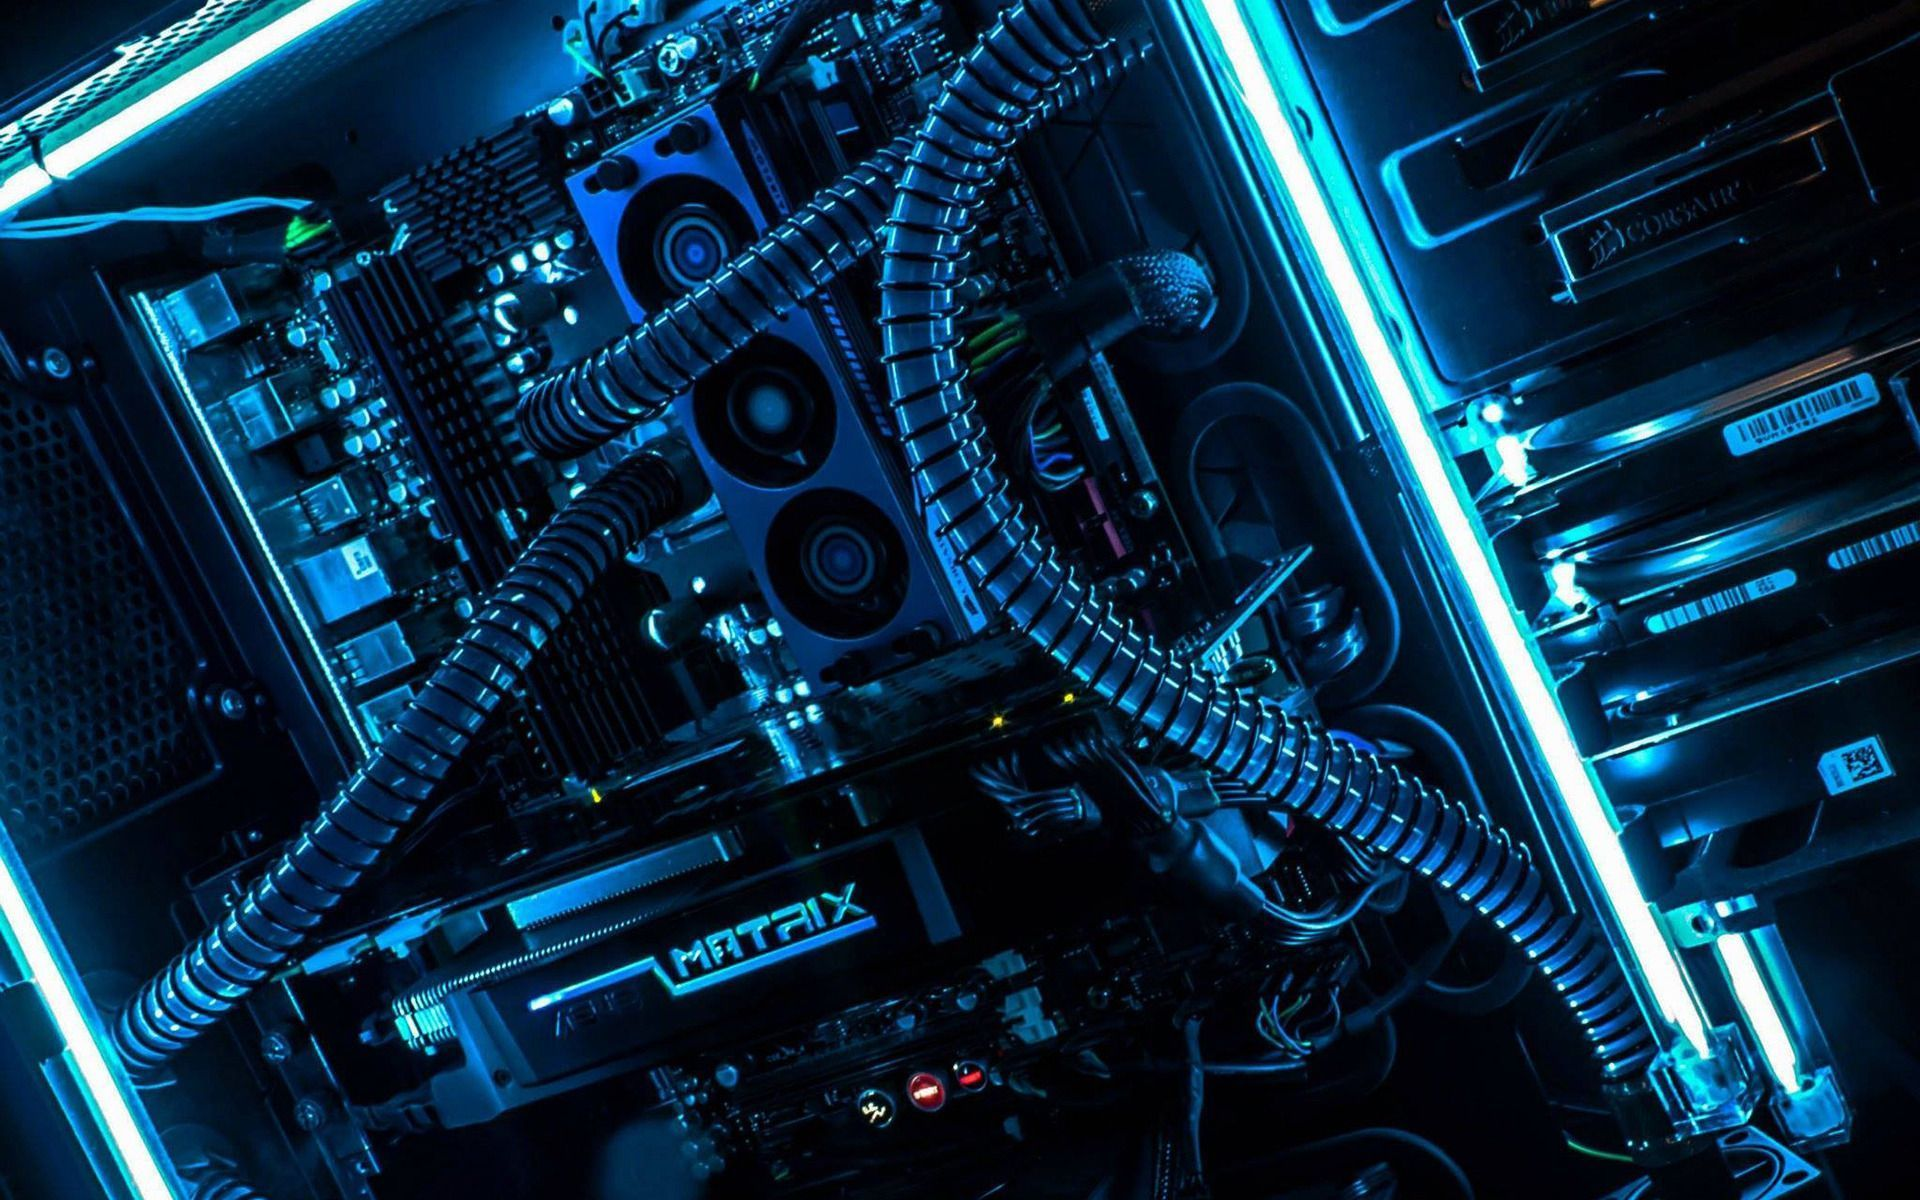 Gaming PC Wallpapers Group 82